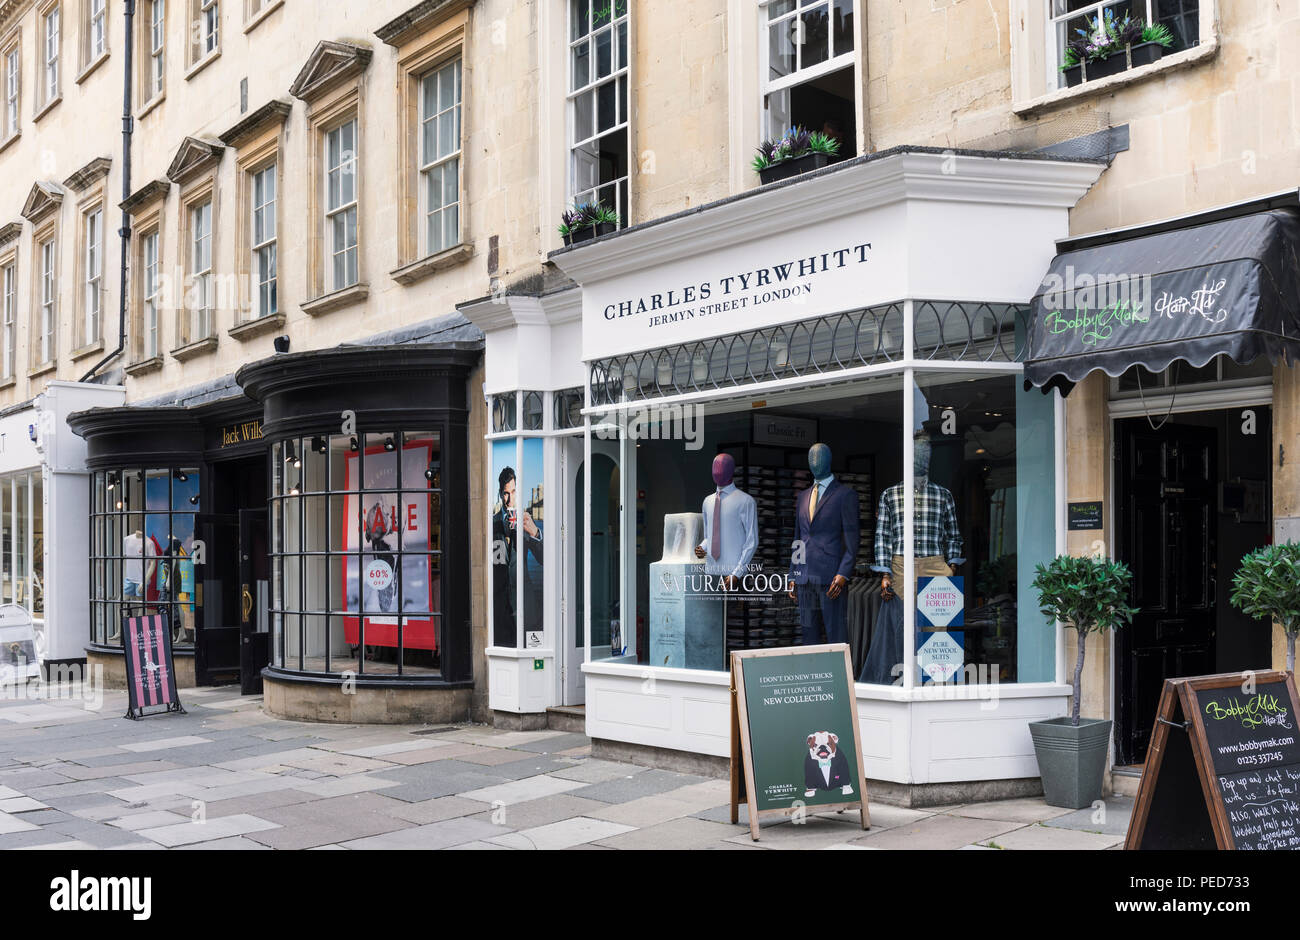 Charles Tyrwhitt and Jack Wills stores in Old Bond St, Bath, England - Stock Image